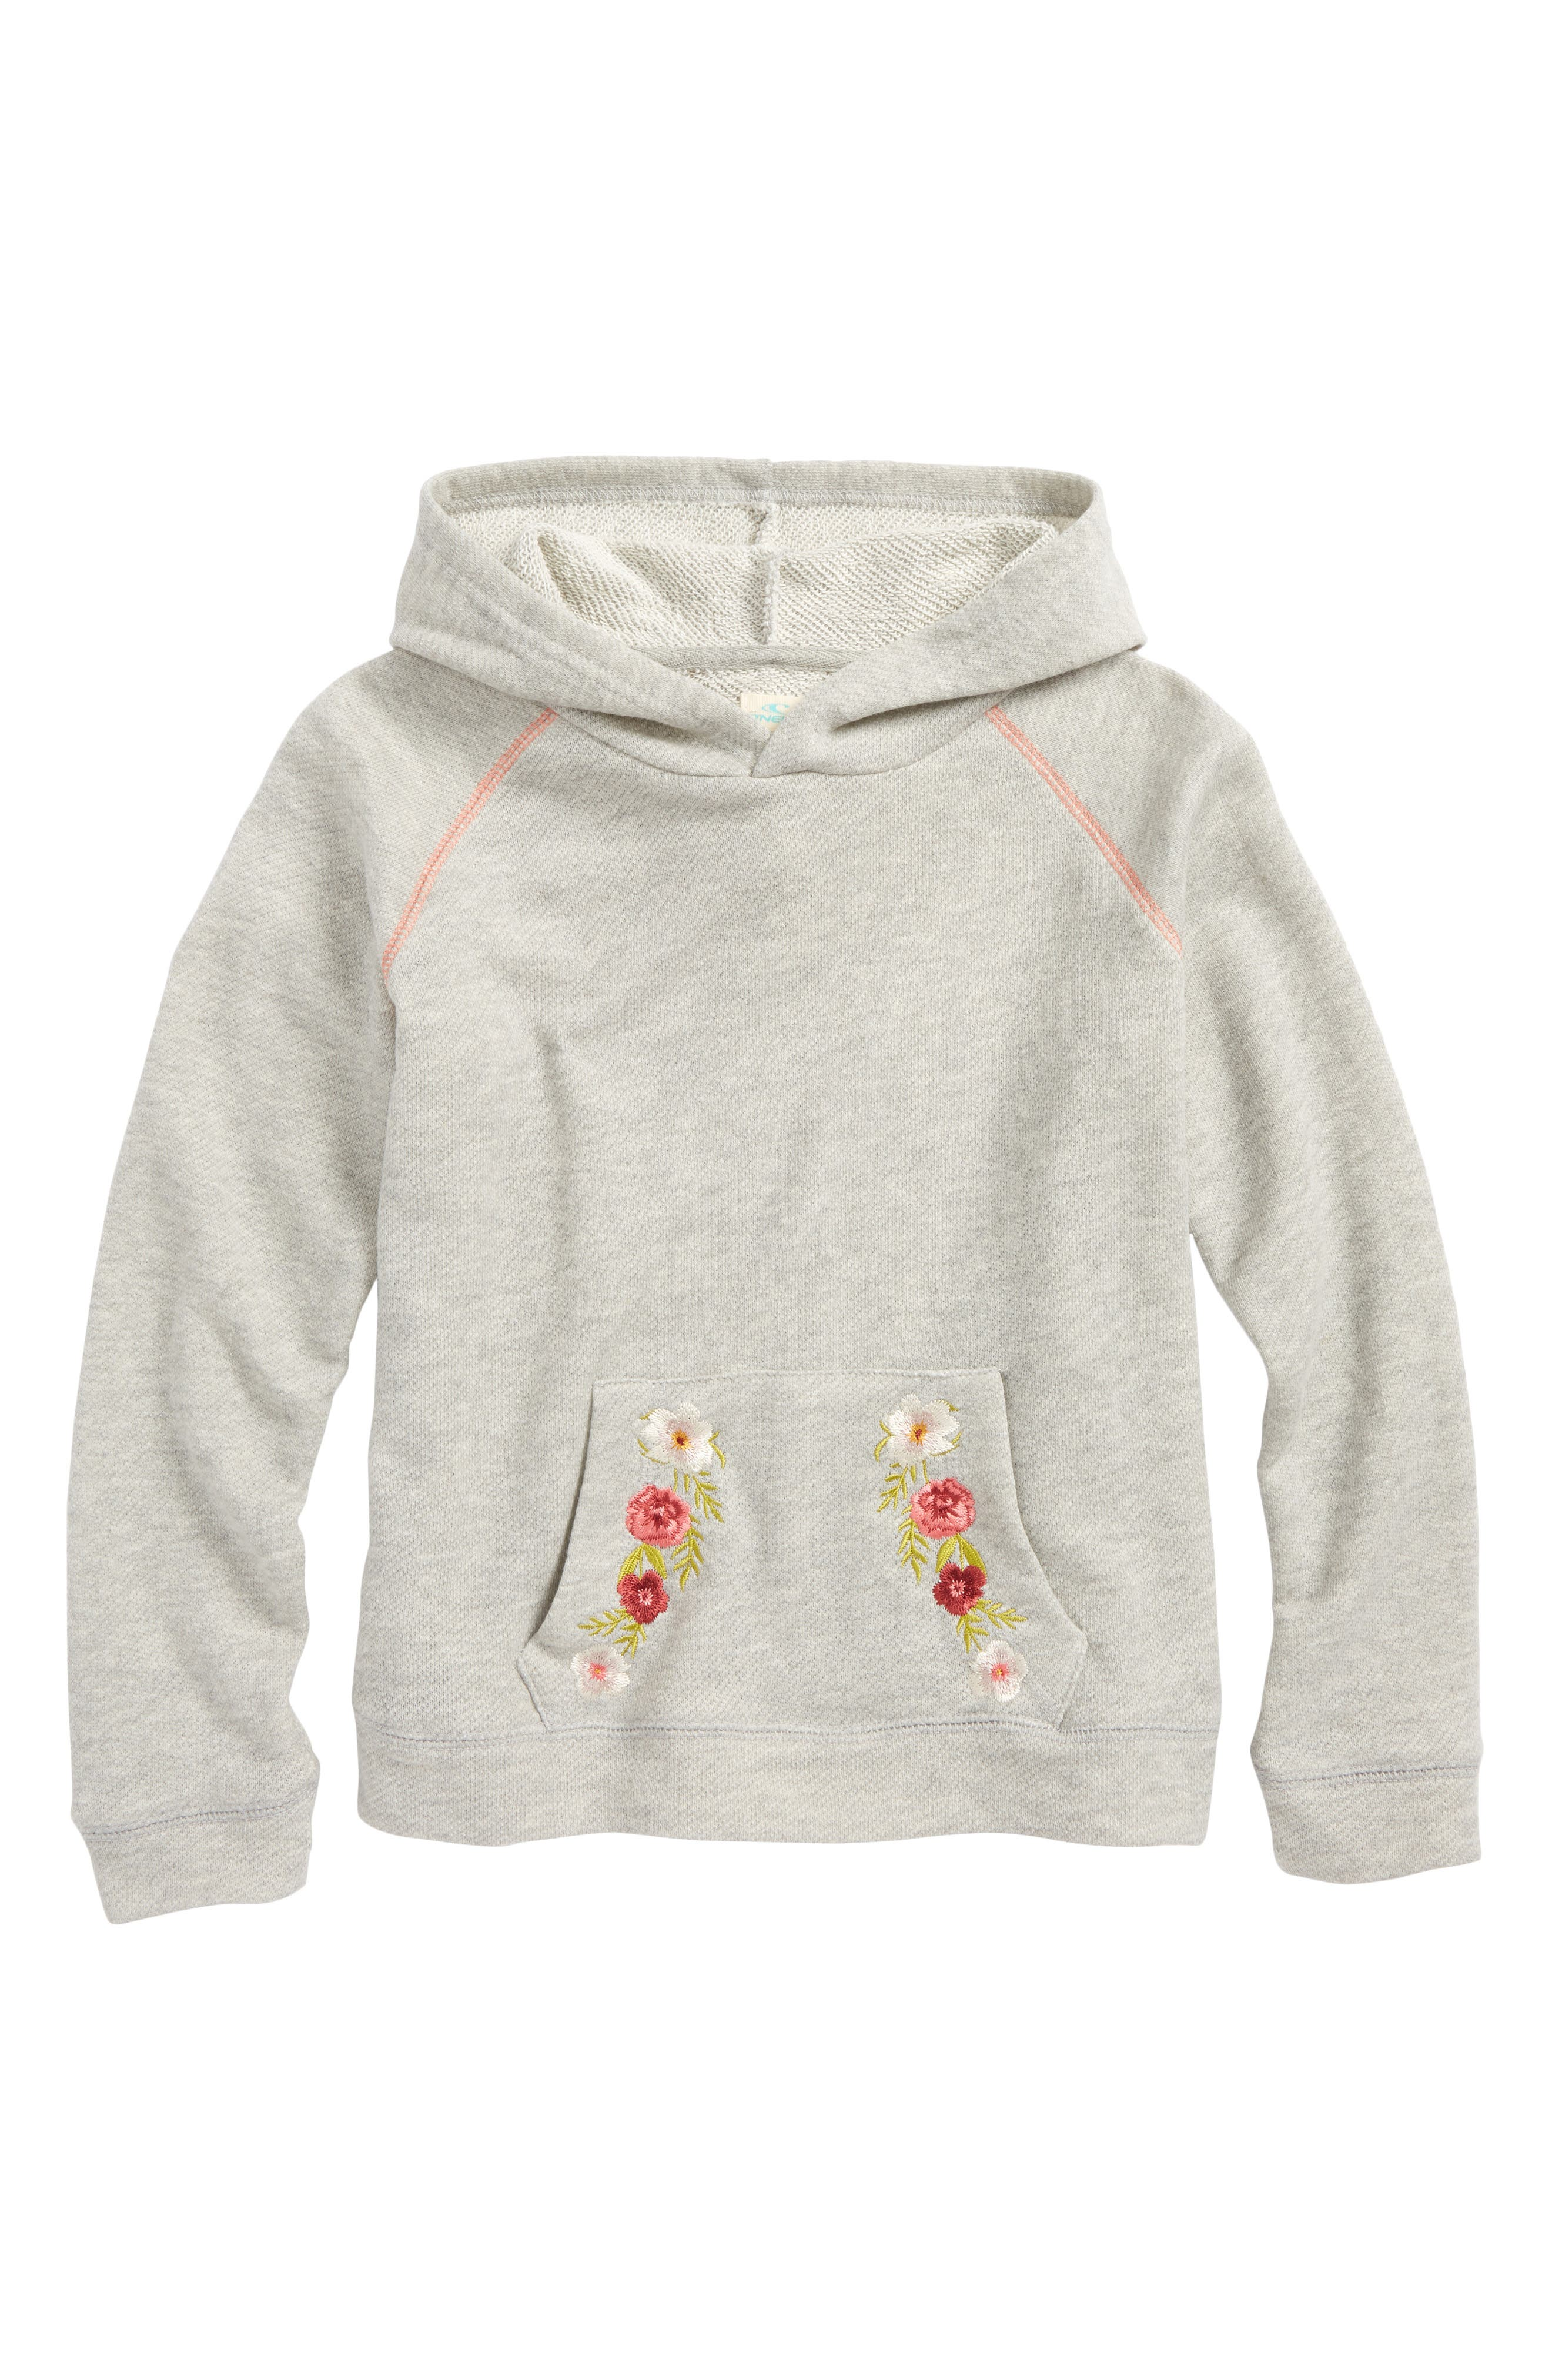 Alternate Image 1 Selected - O'Neill Brianna Pullover Hoodie (Big Girls)